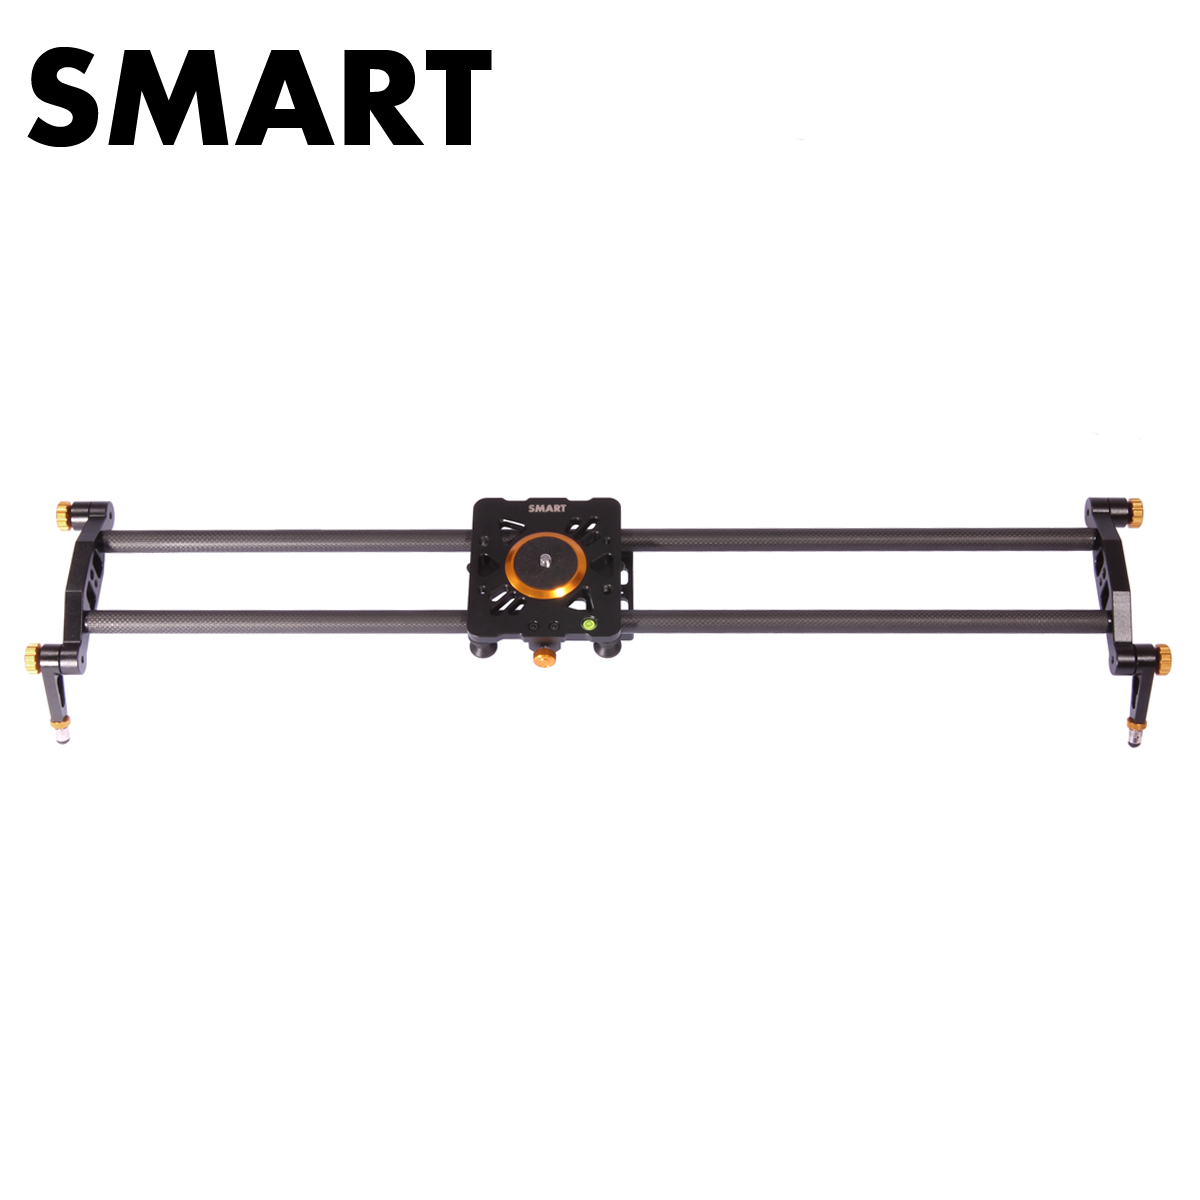 SMART V1-60 Carbon Fiber Slide Dolly (60cm)